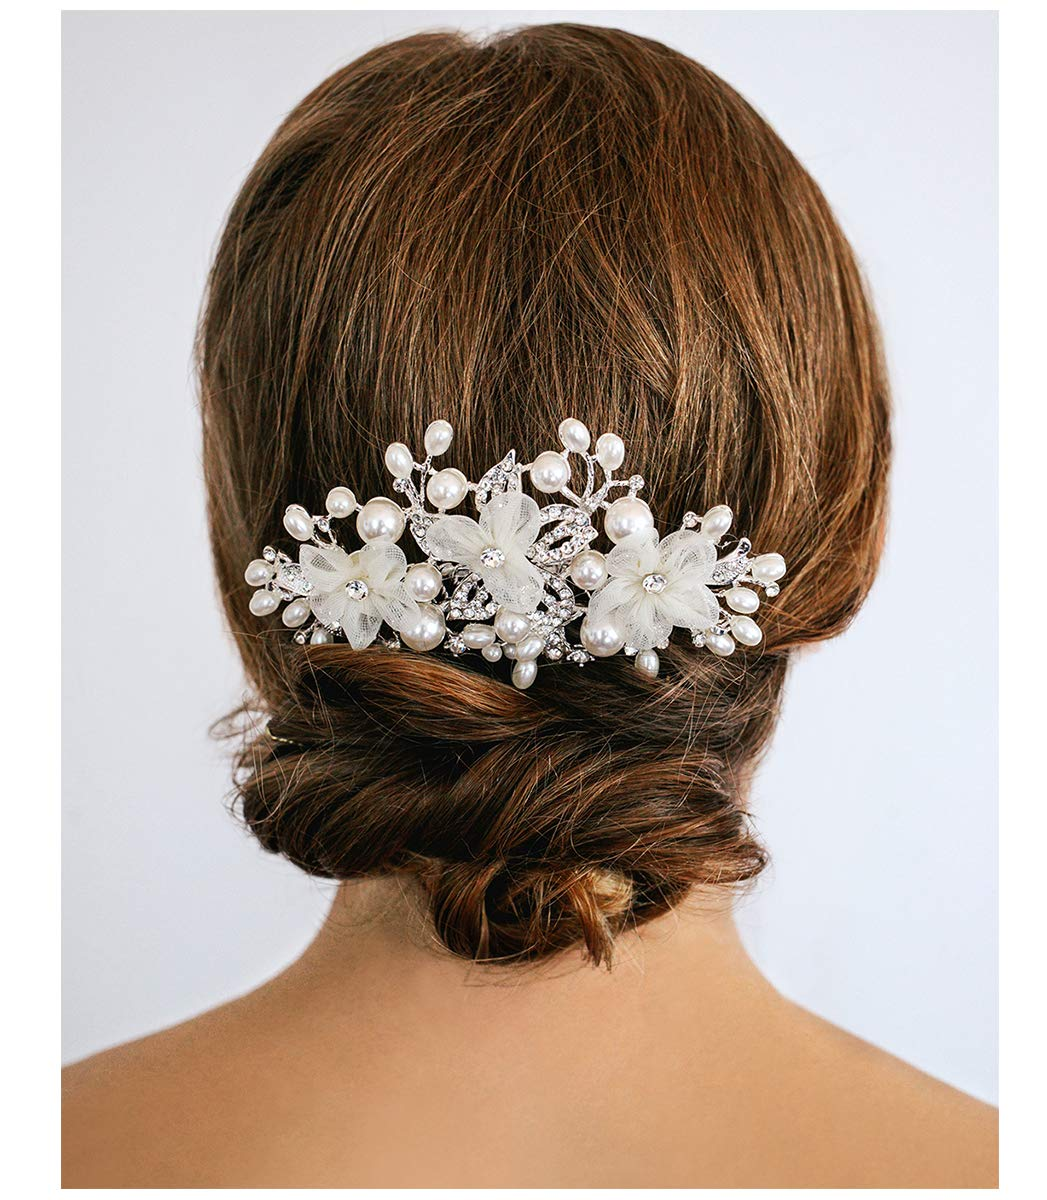 SWEETV Flower Wedding Hair Comb Ivory Pearl Clip,Bridal Hair Piece Women Hair Accessories for Brides by SWEETV